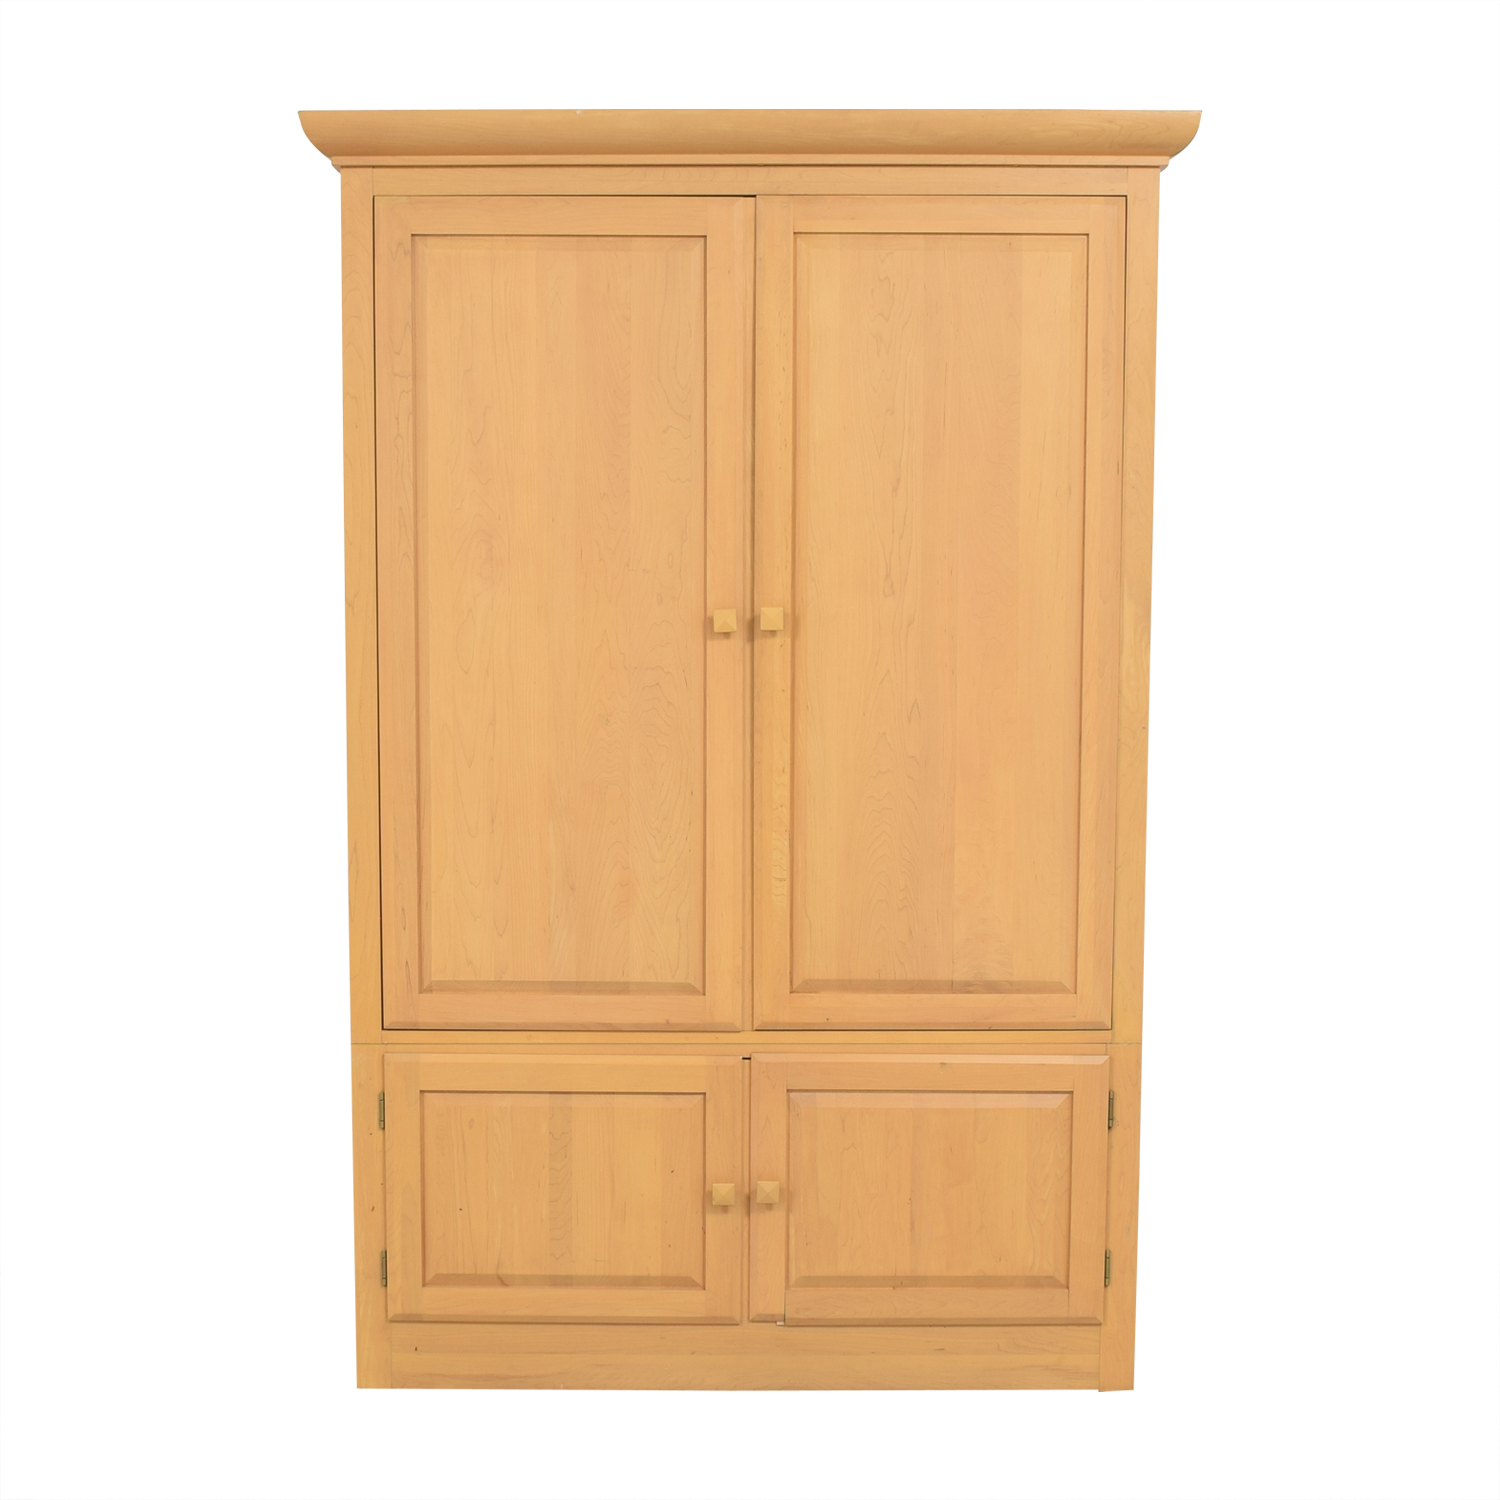 Ethan Allen Ethan Allen American Dimensions Media Armoire price